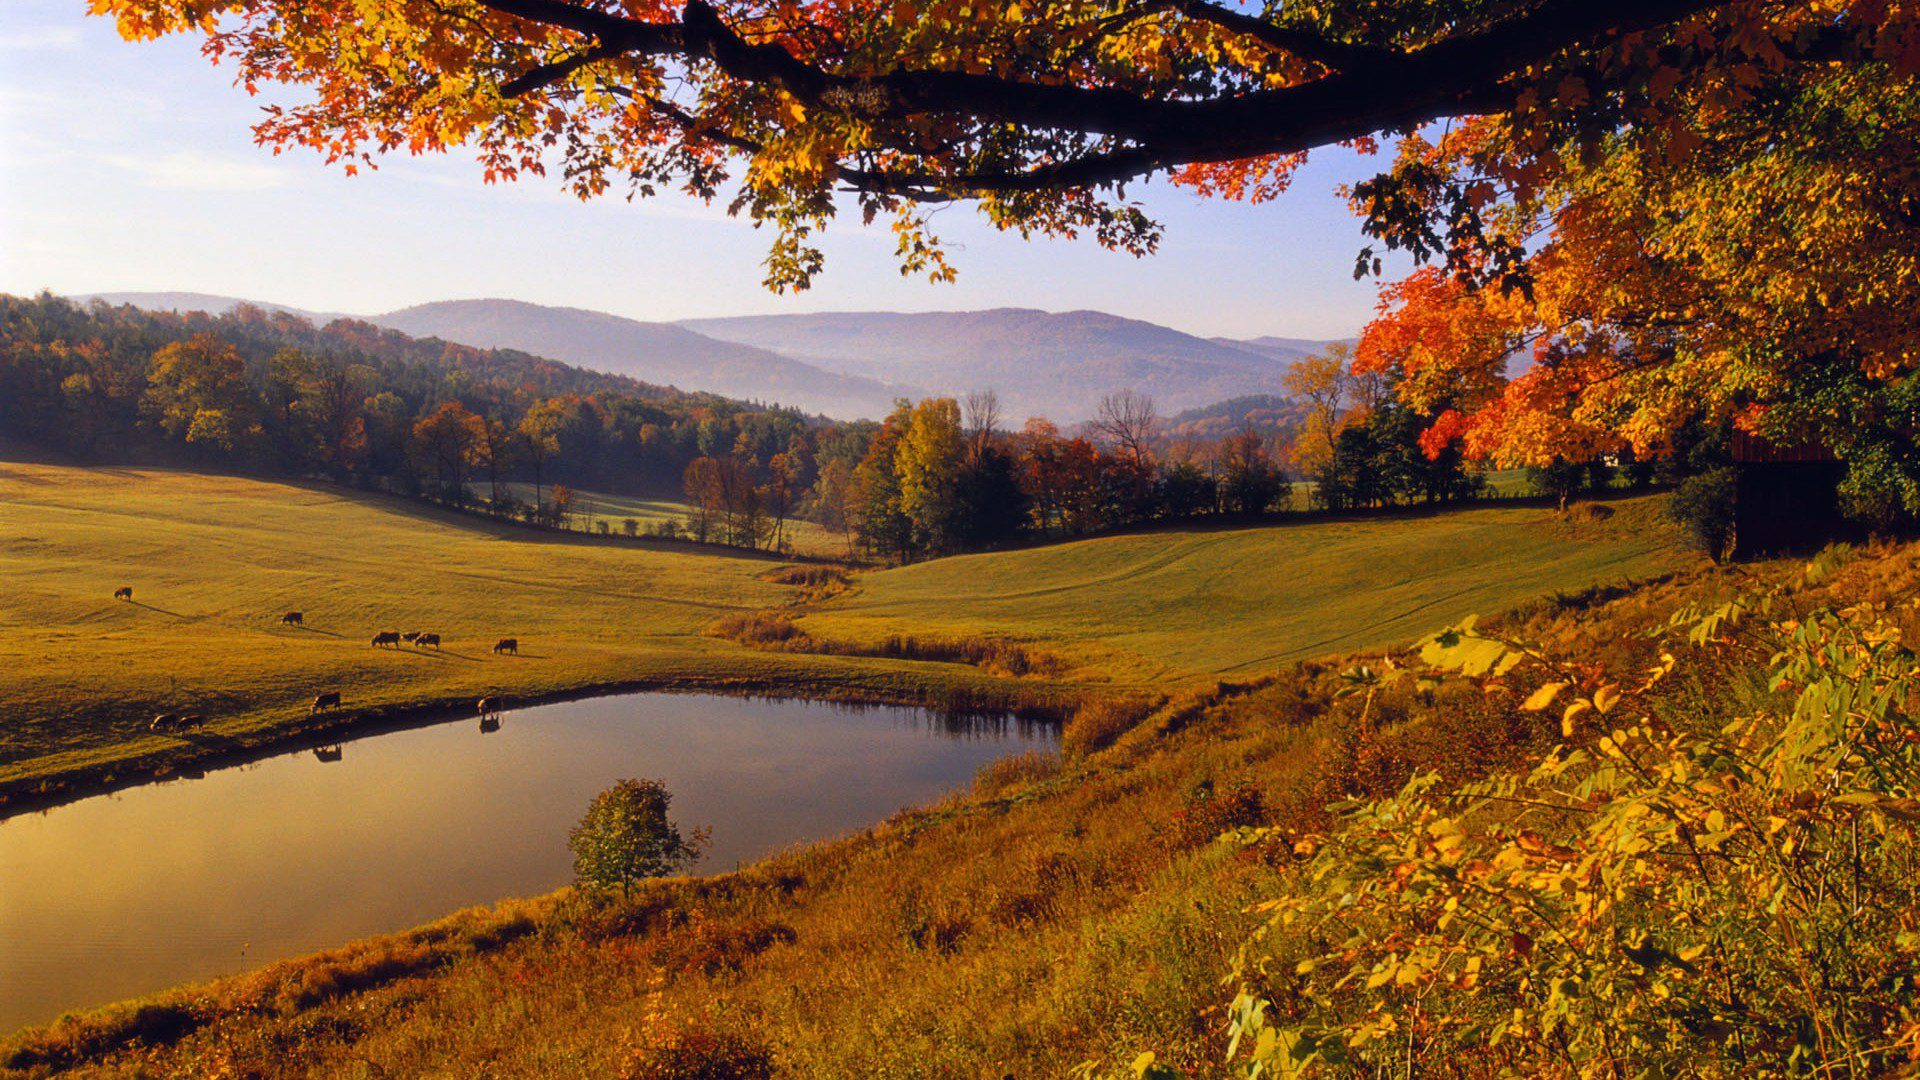 26904 download wallpaper Landscape, Trees, Autumn, Lakes screensavers and pictures for free